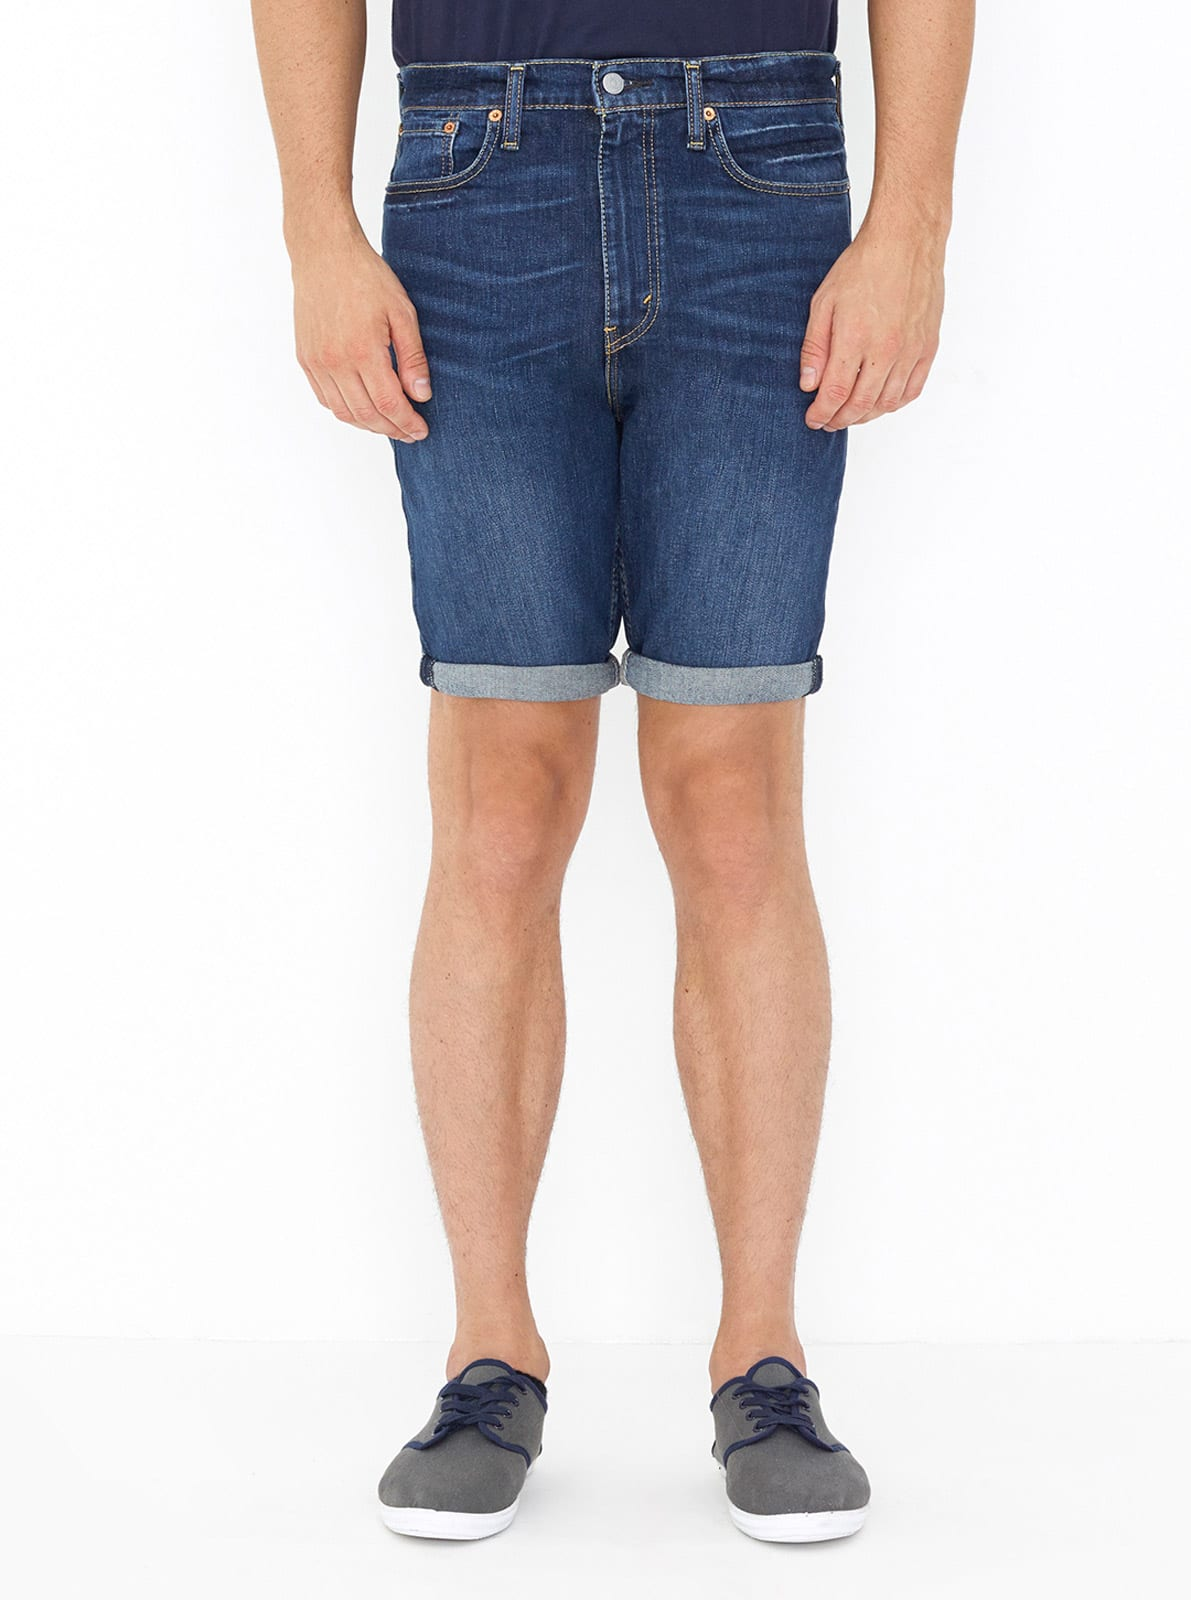 85224d13cdde Image for Levi 522 Taper Short In Diaz from Just Jeans ...